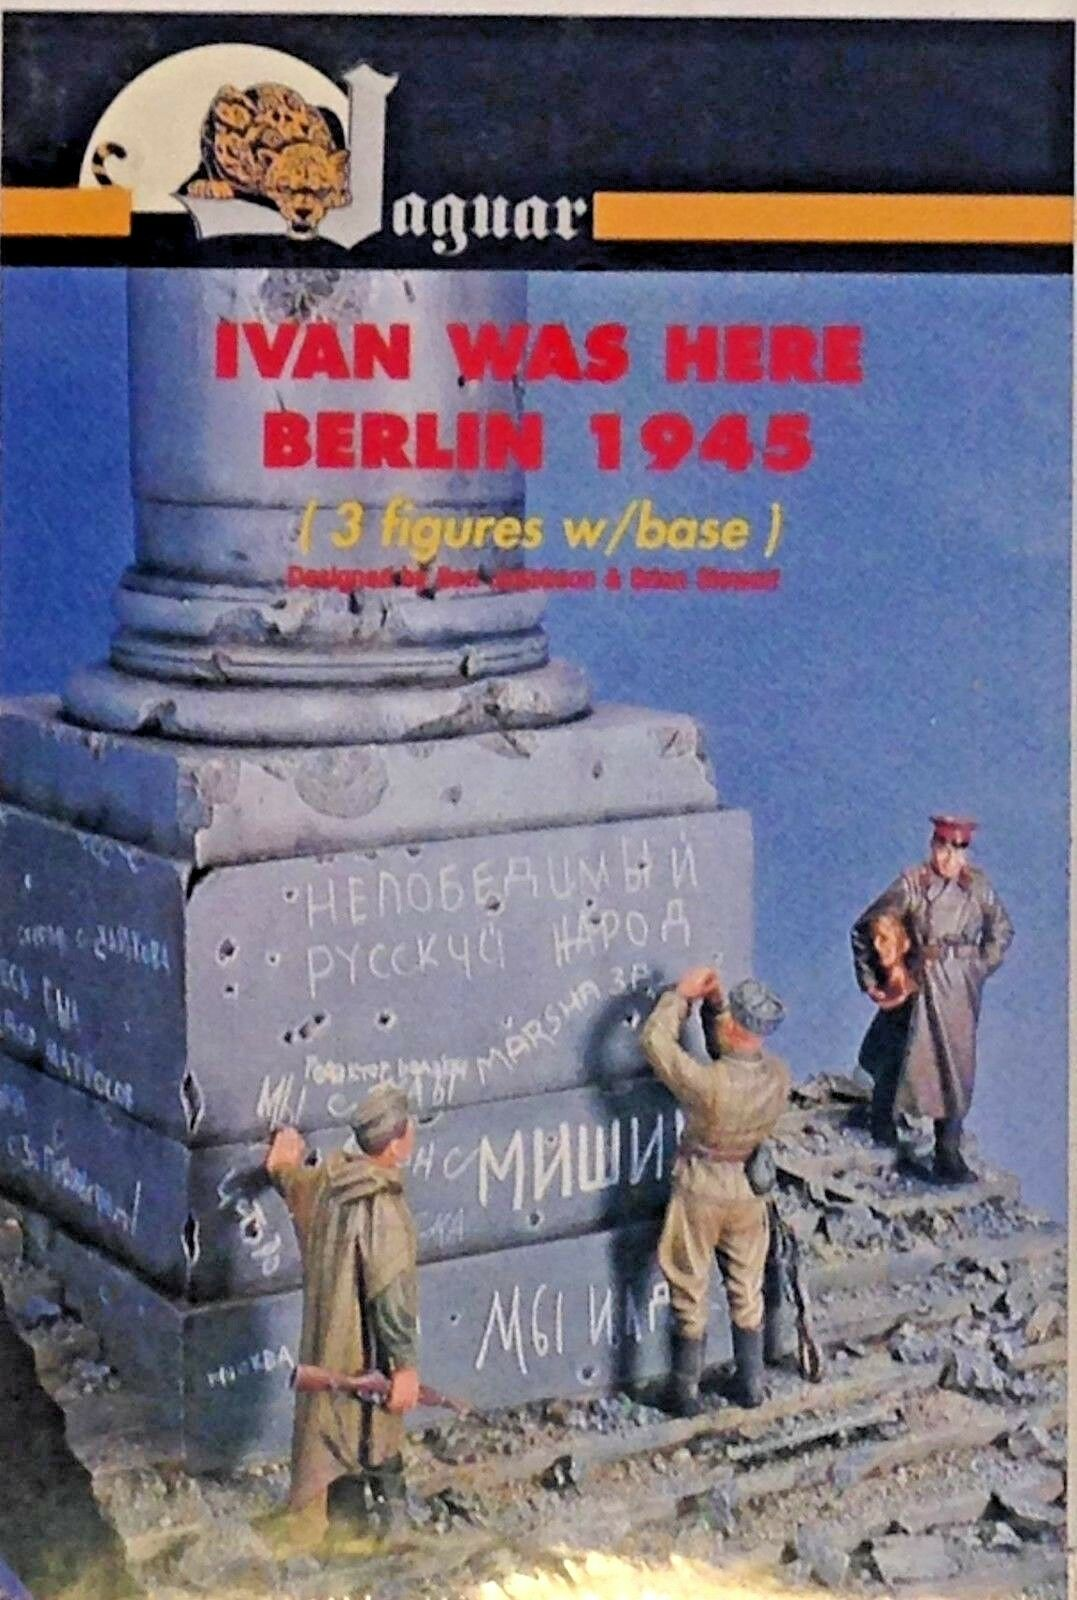 1 35 JAGUAR IVAN WAS HERE BERLIN 1945 VIGNETTE. NEW.